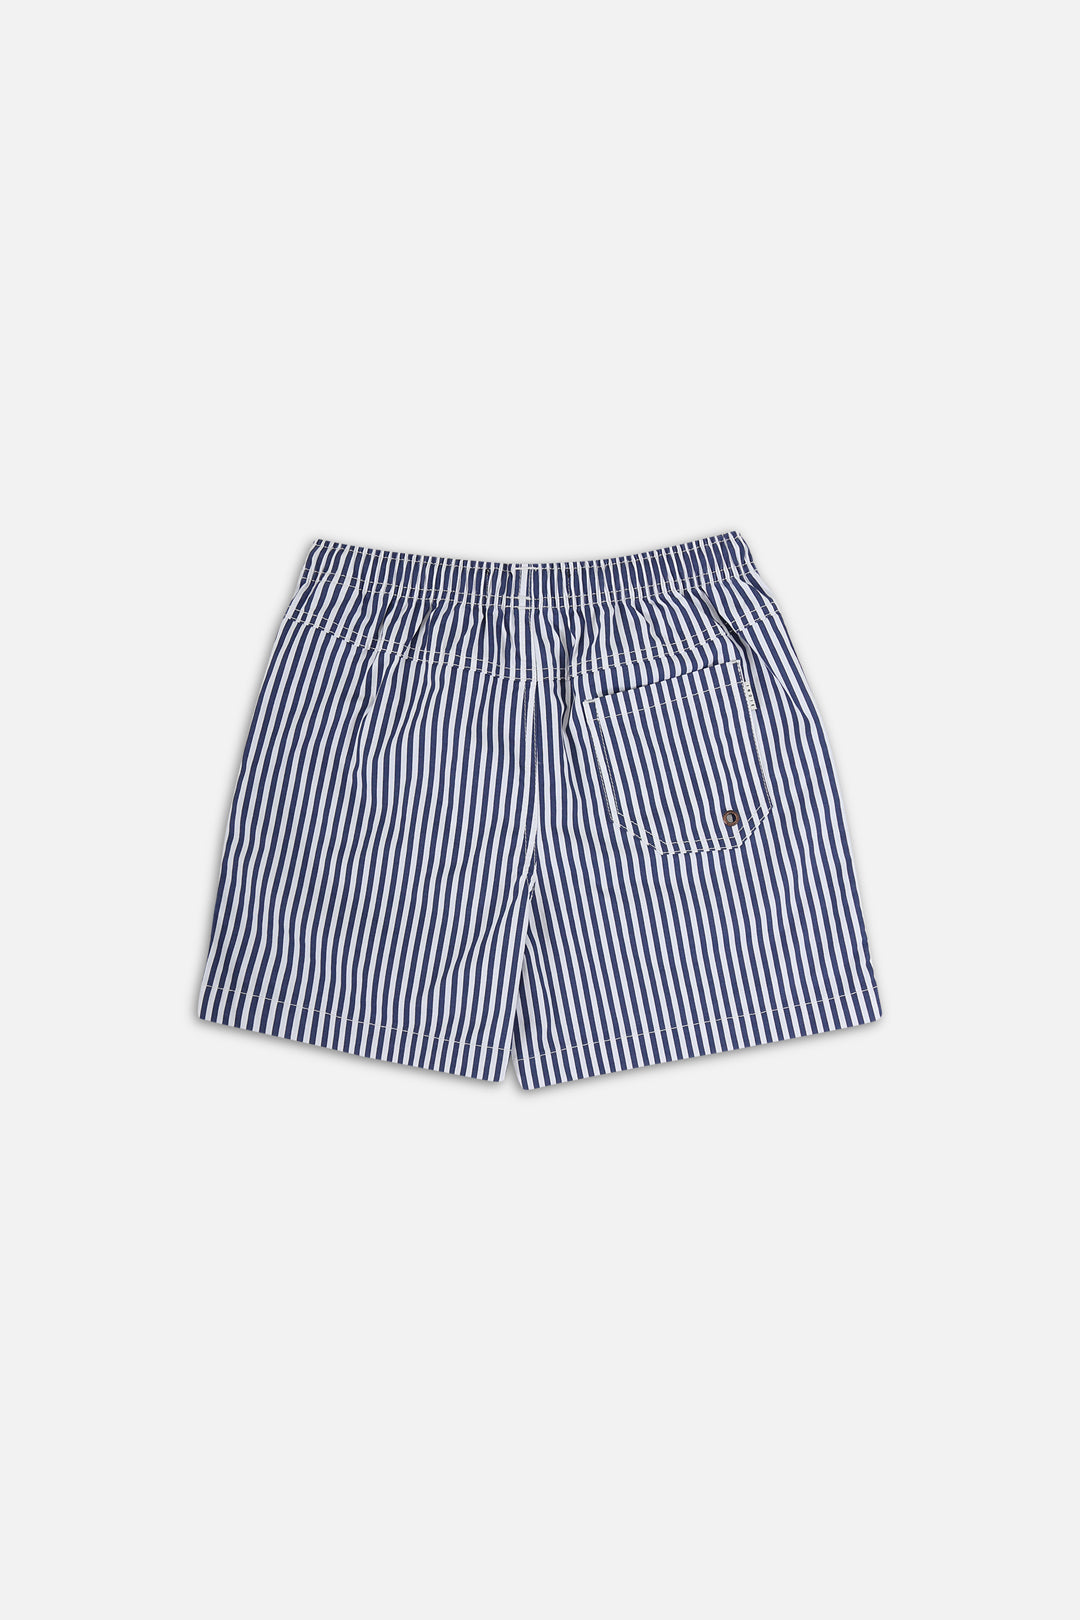 The Rivera Short - White